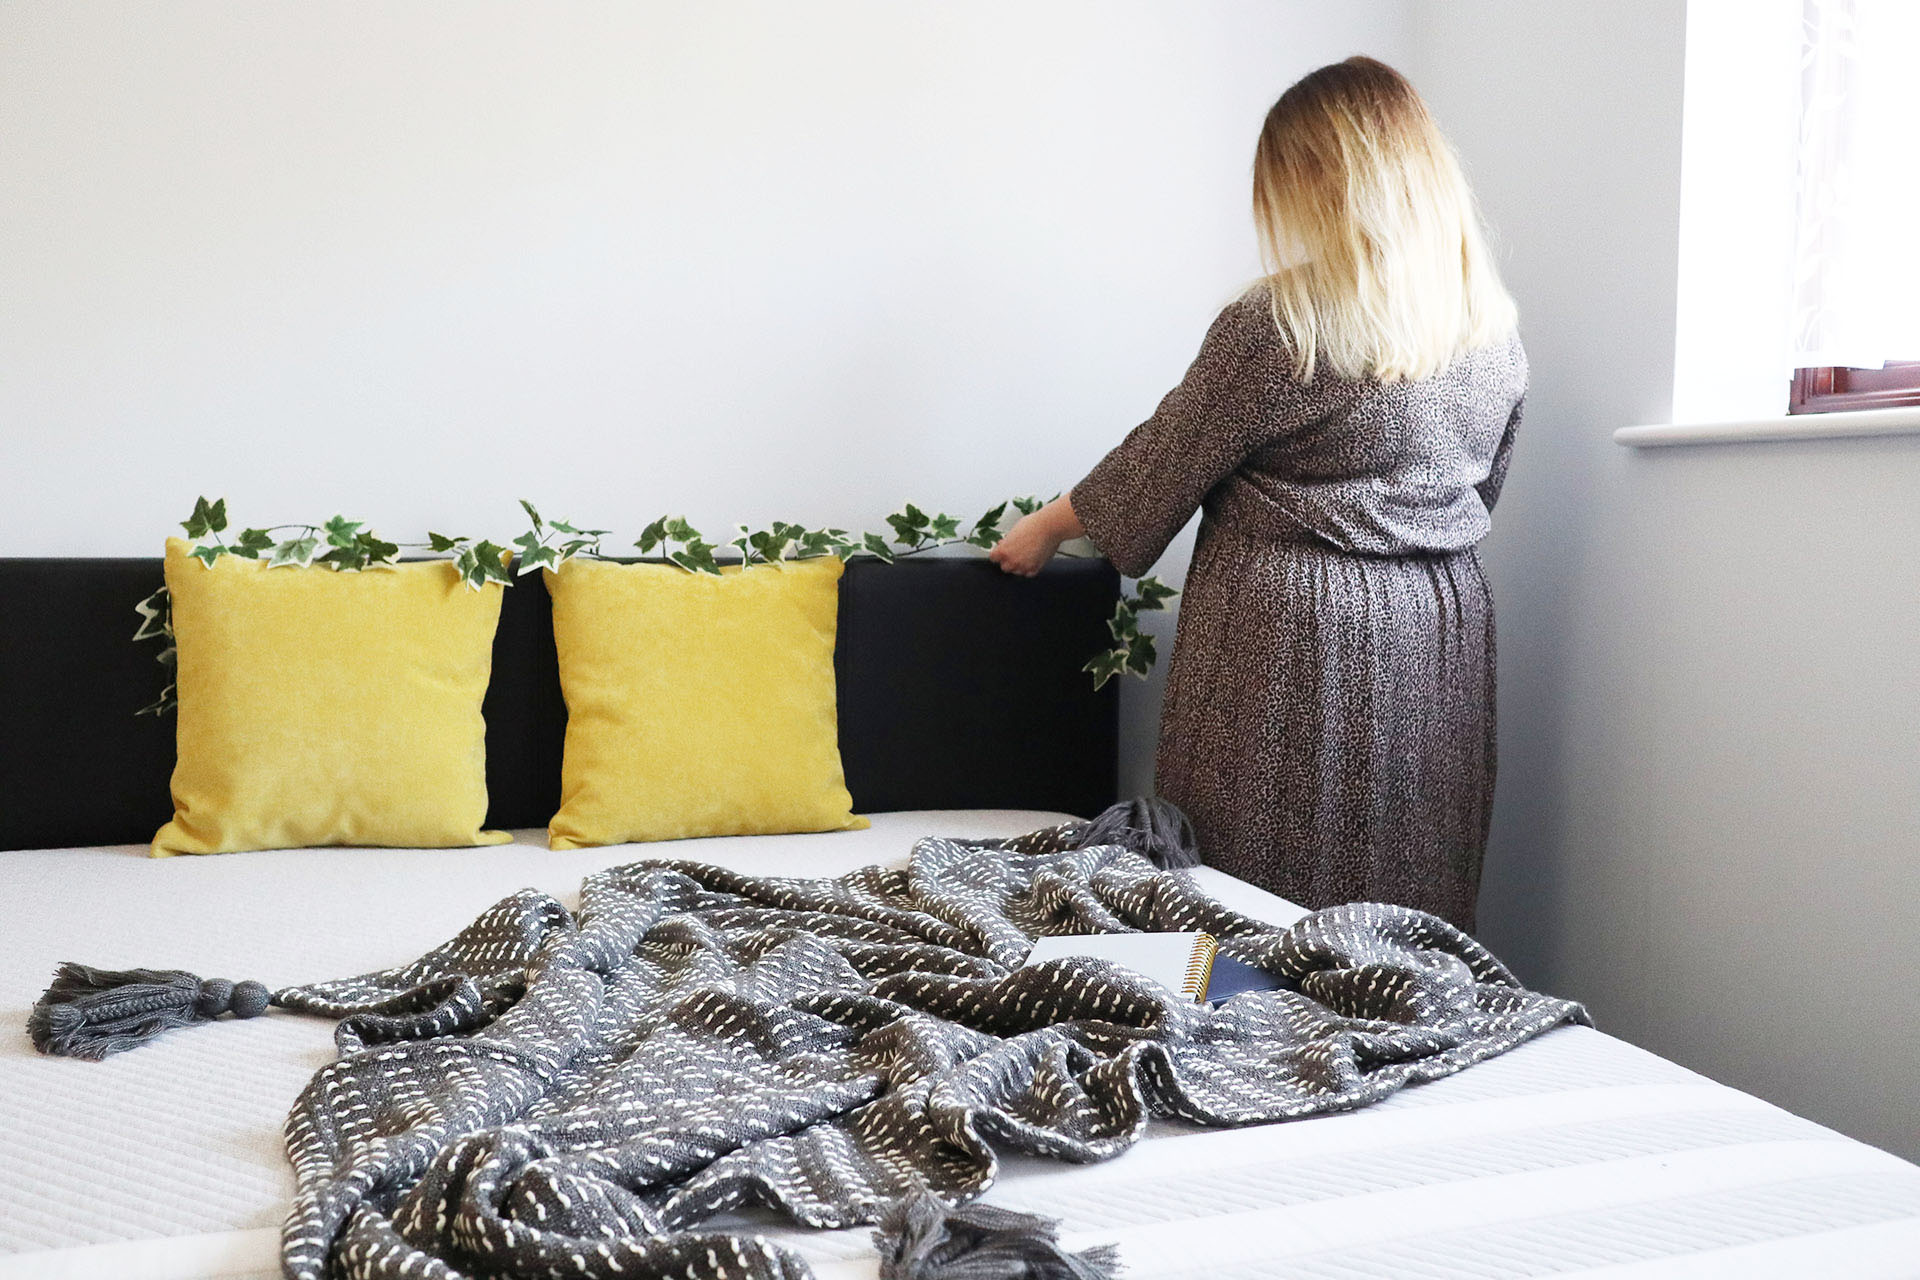 Styling our new bedroom, which features our new Leesa mattress